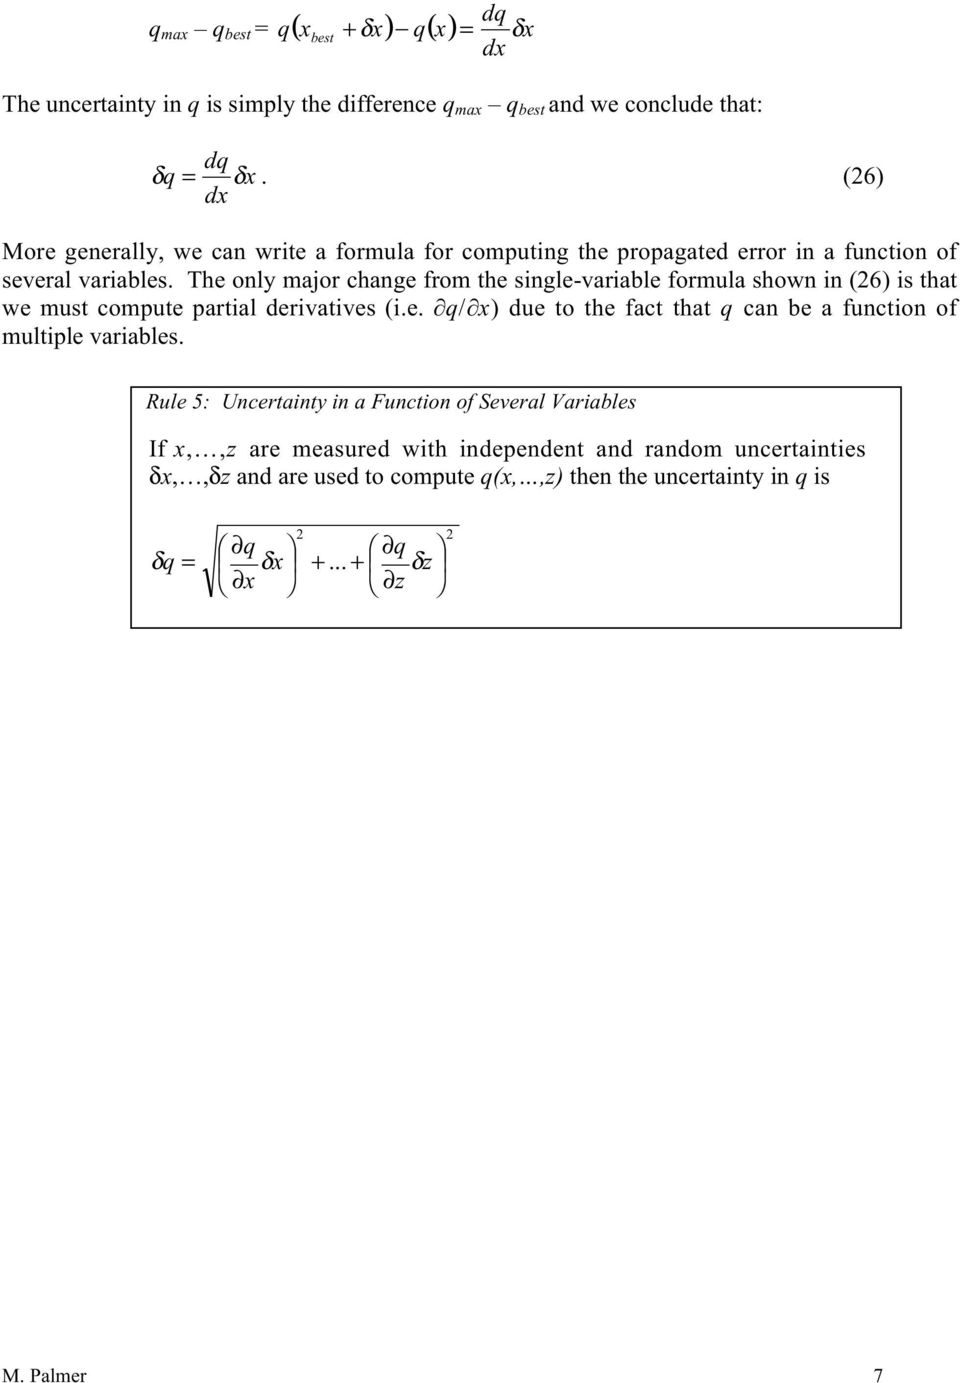 The onl mjor chnge from the single-vrile formul shown in (6) is tht we must compute prtil derivtives (i.e. / ) due to the fct tht cn e function of multiple vriles.